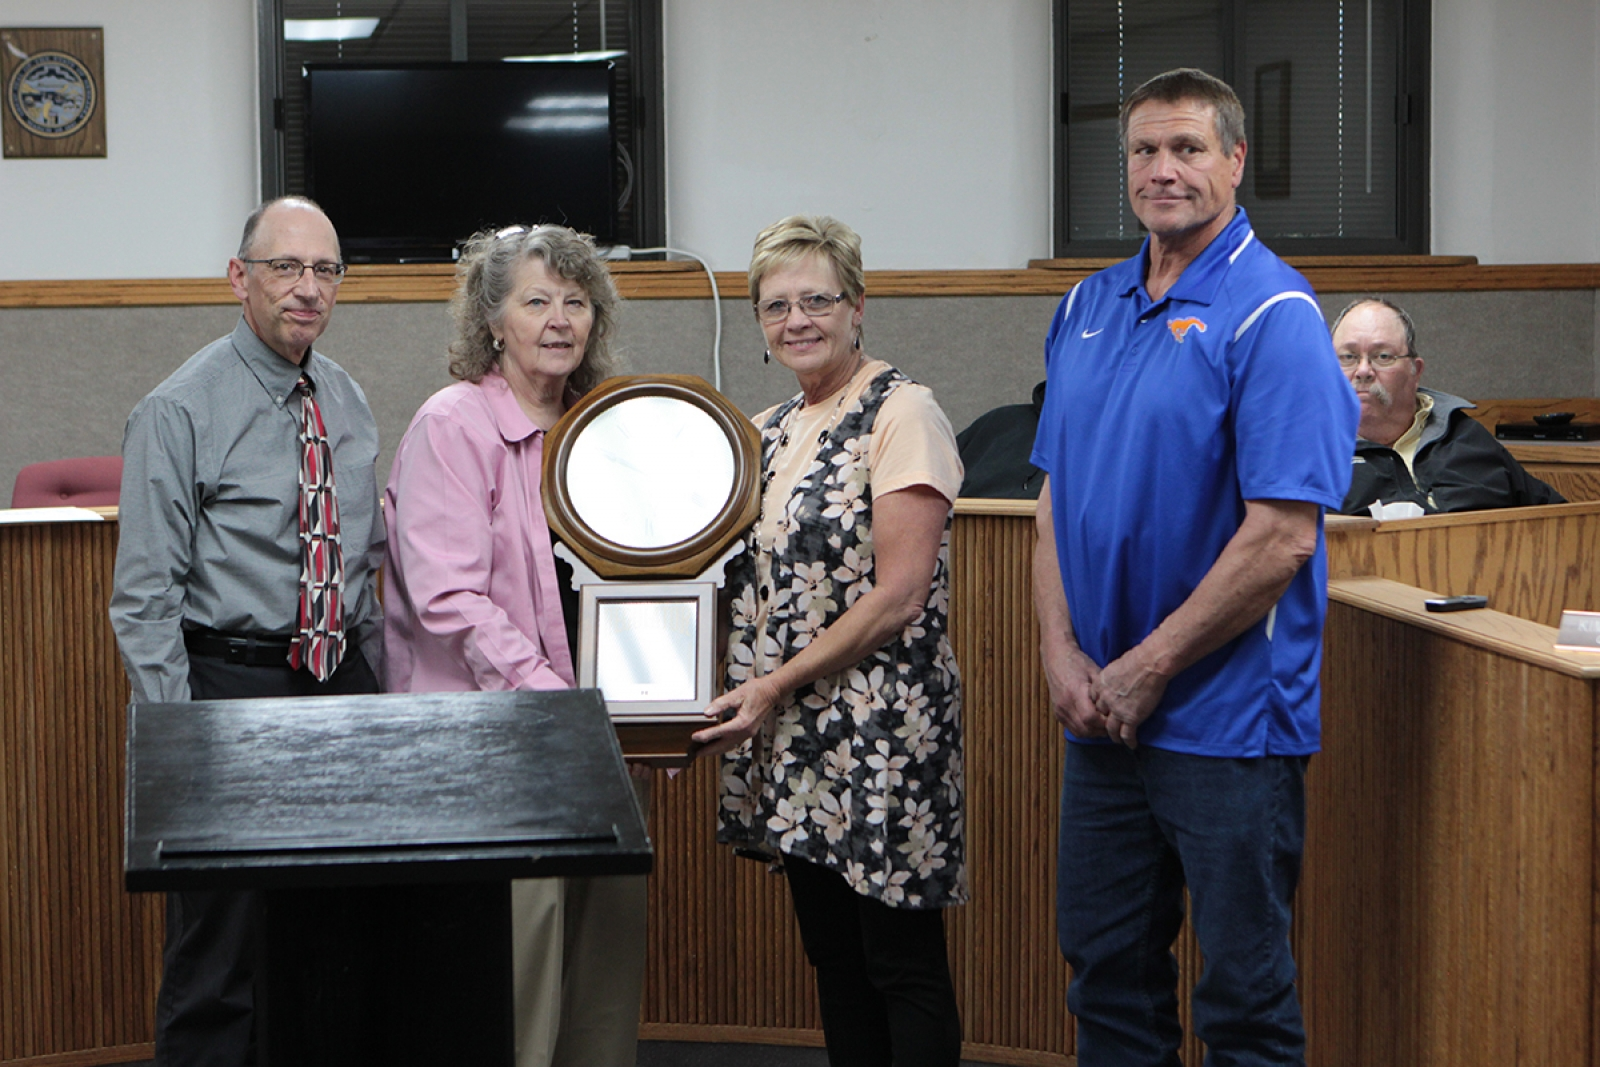 City Manager Glen Spaugh and Gordon Mayor Nancy Russell accept a clock from NPPD Account Manager Terry Rajewich and Doug Johnson at the Gordon City Council meeting May 9.